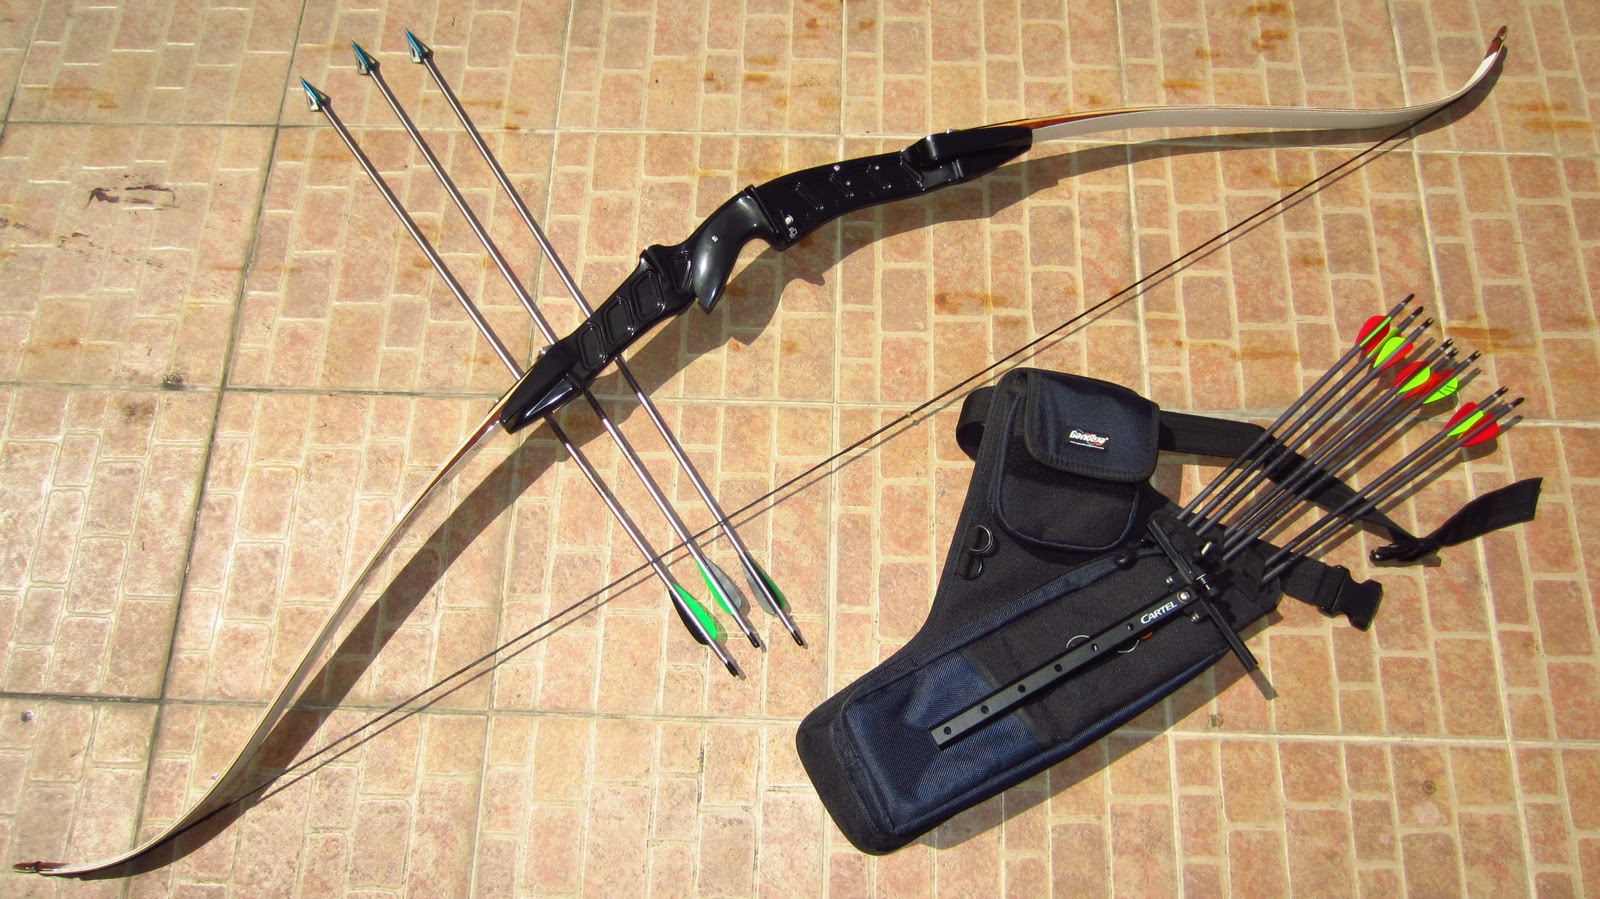 THE ZOMBIE HUNTER: A Survivalist's Journal: The Recurve Bow